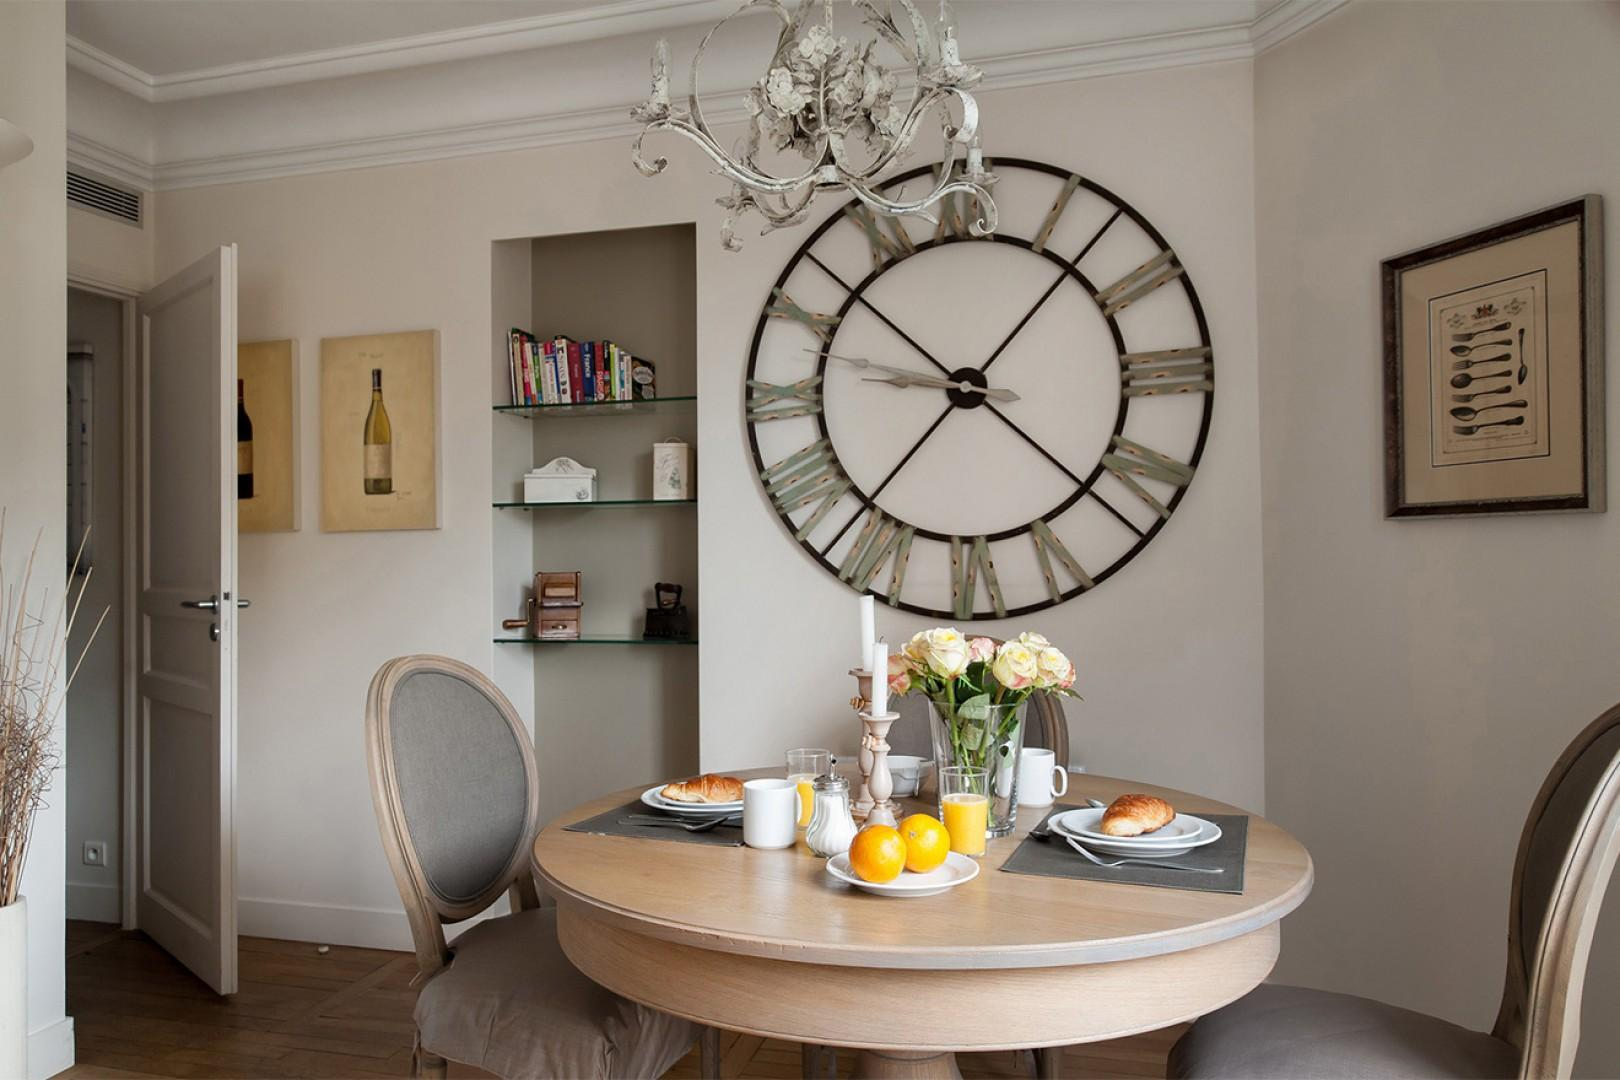 Have a French breakfast in the comfort of your own apartment.